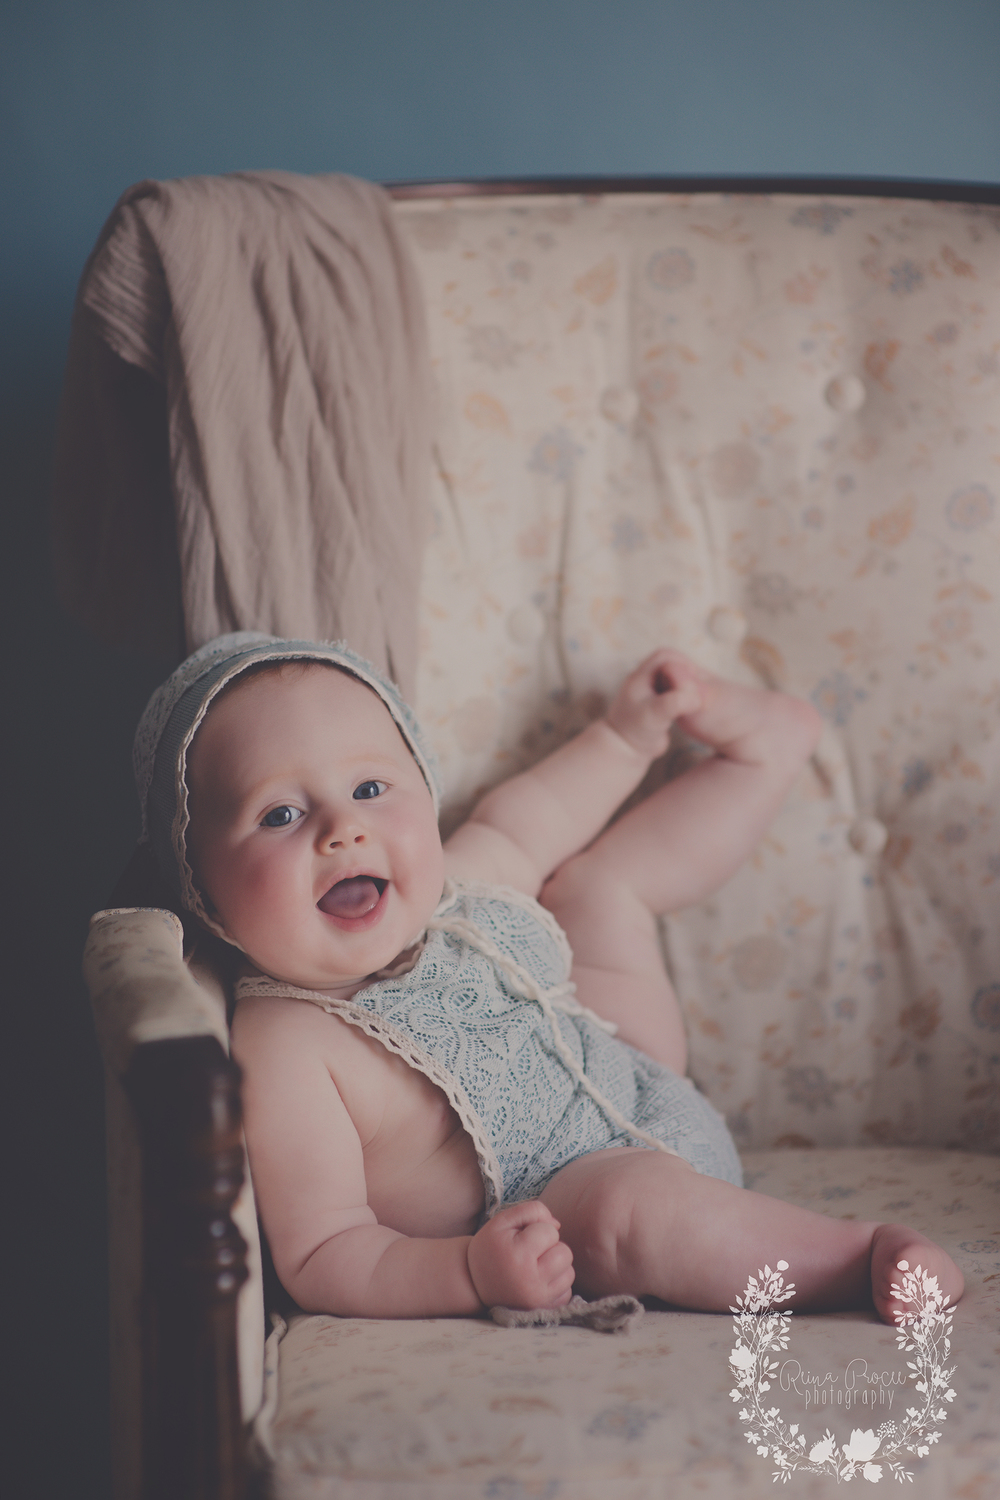 montreal-baby-pictures-sunset-6-months-beautiful-girl-08.png